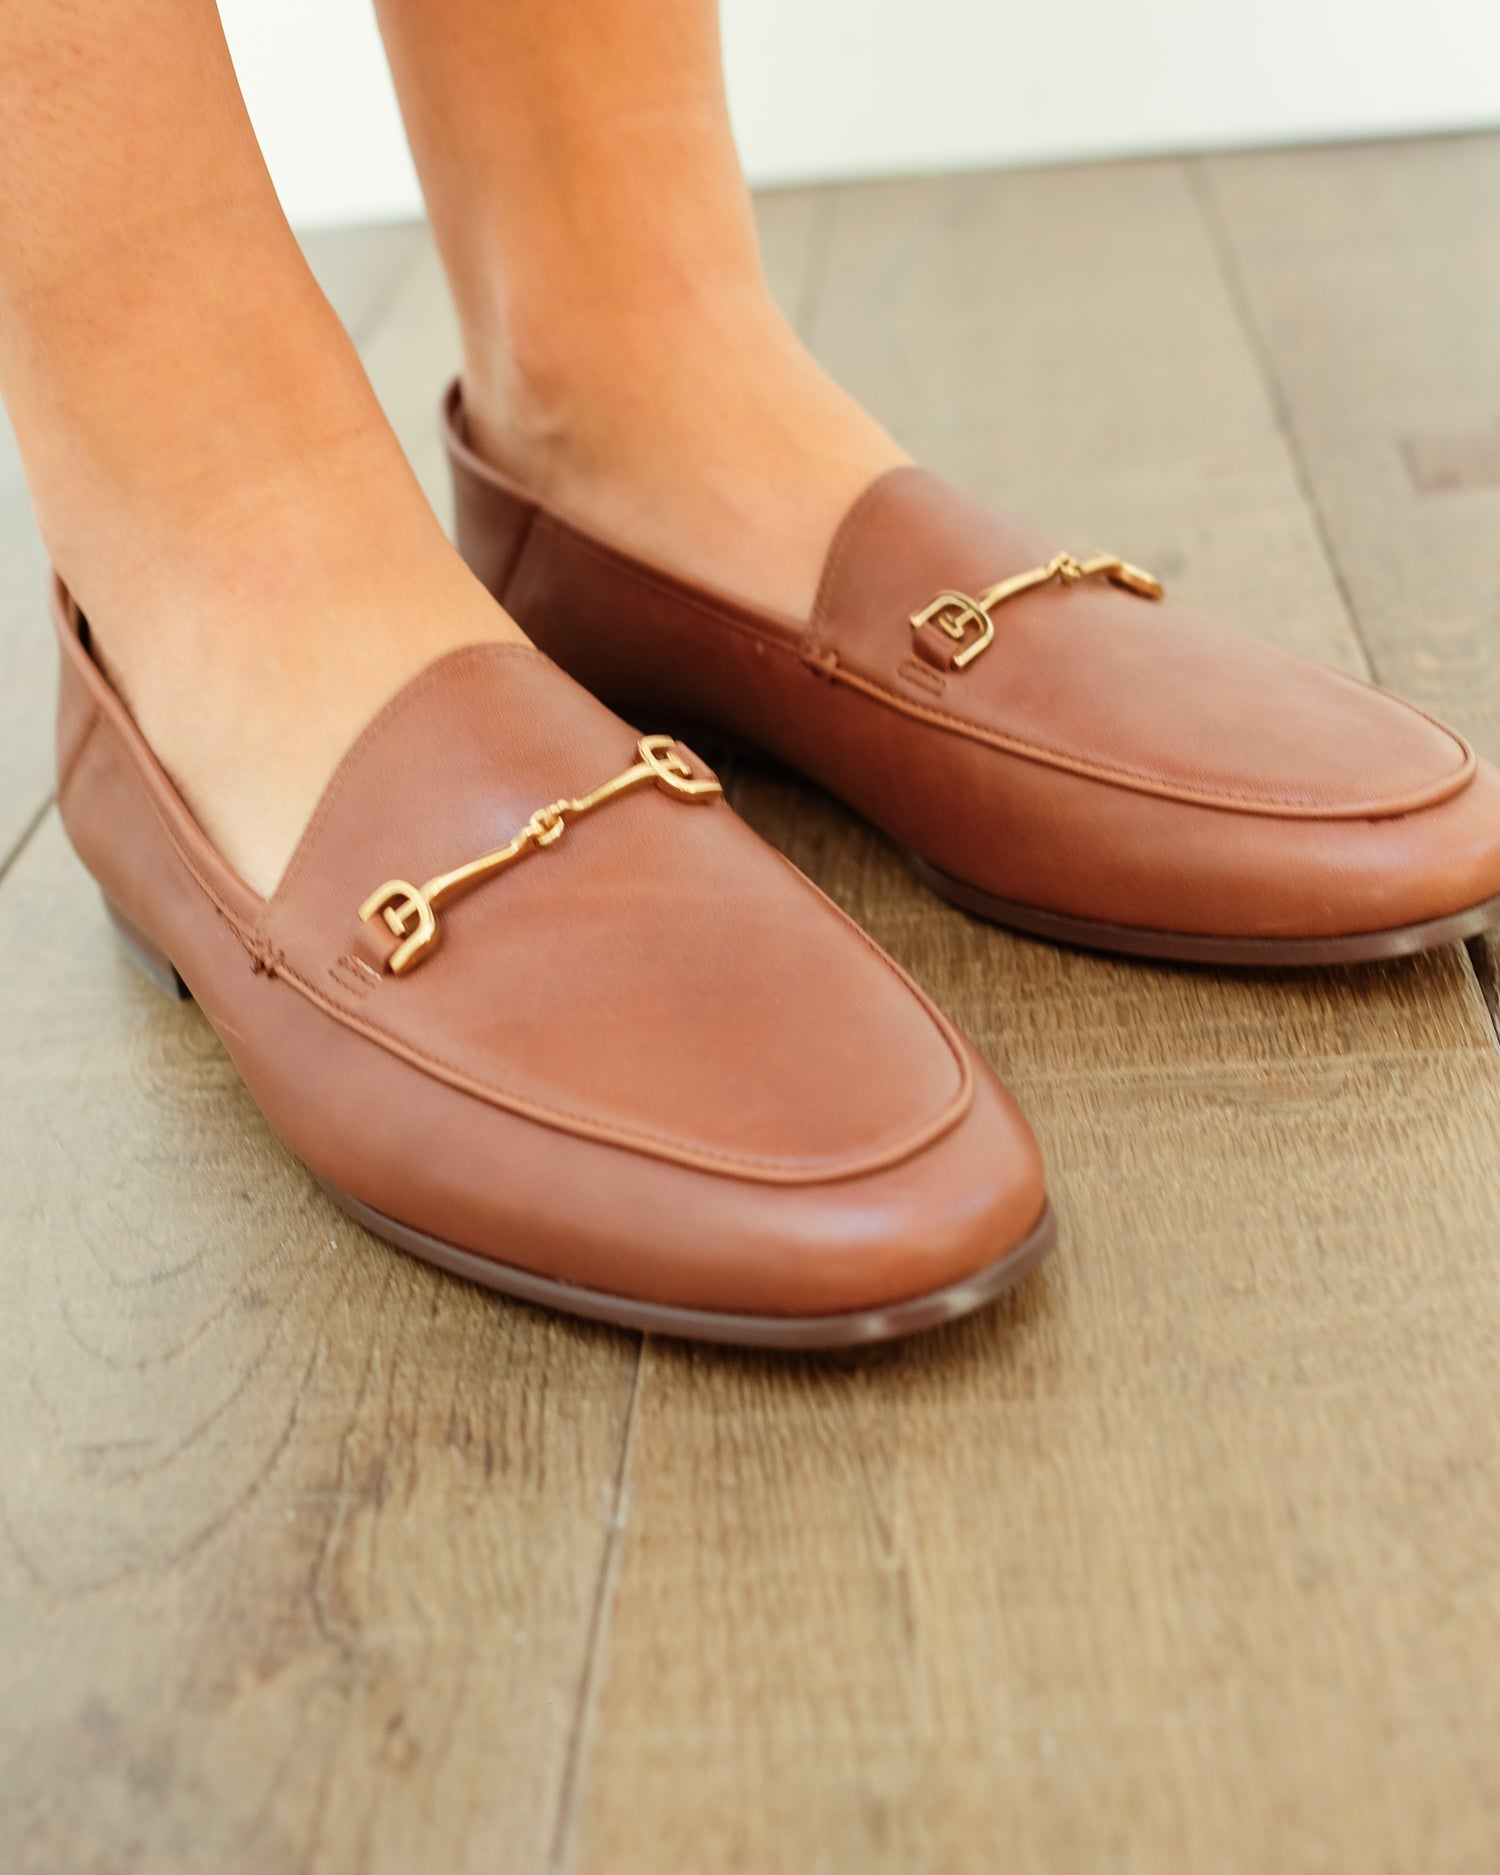 SE Lorraine Loafer in Toasted Coconut